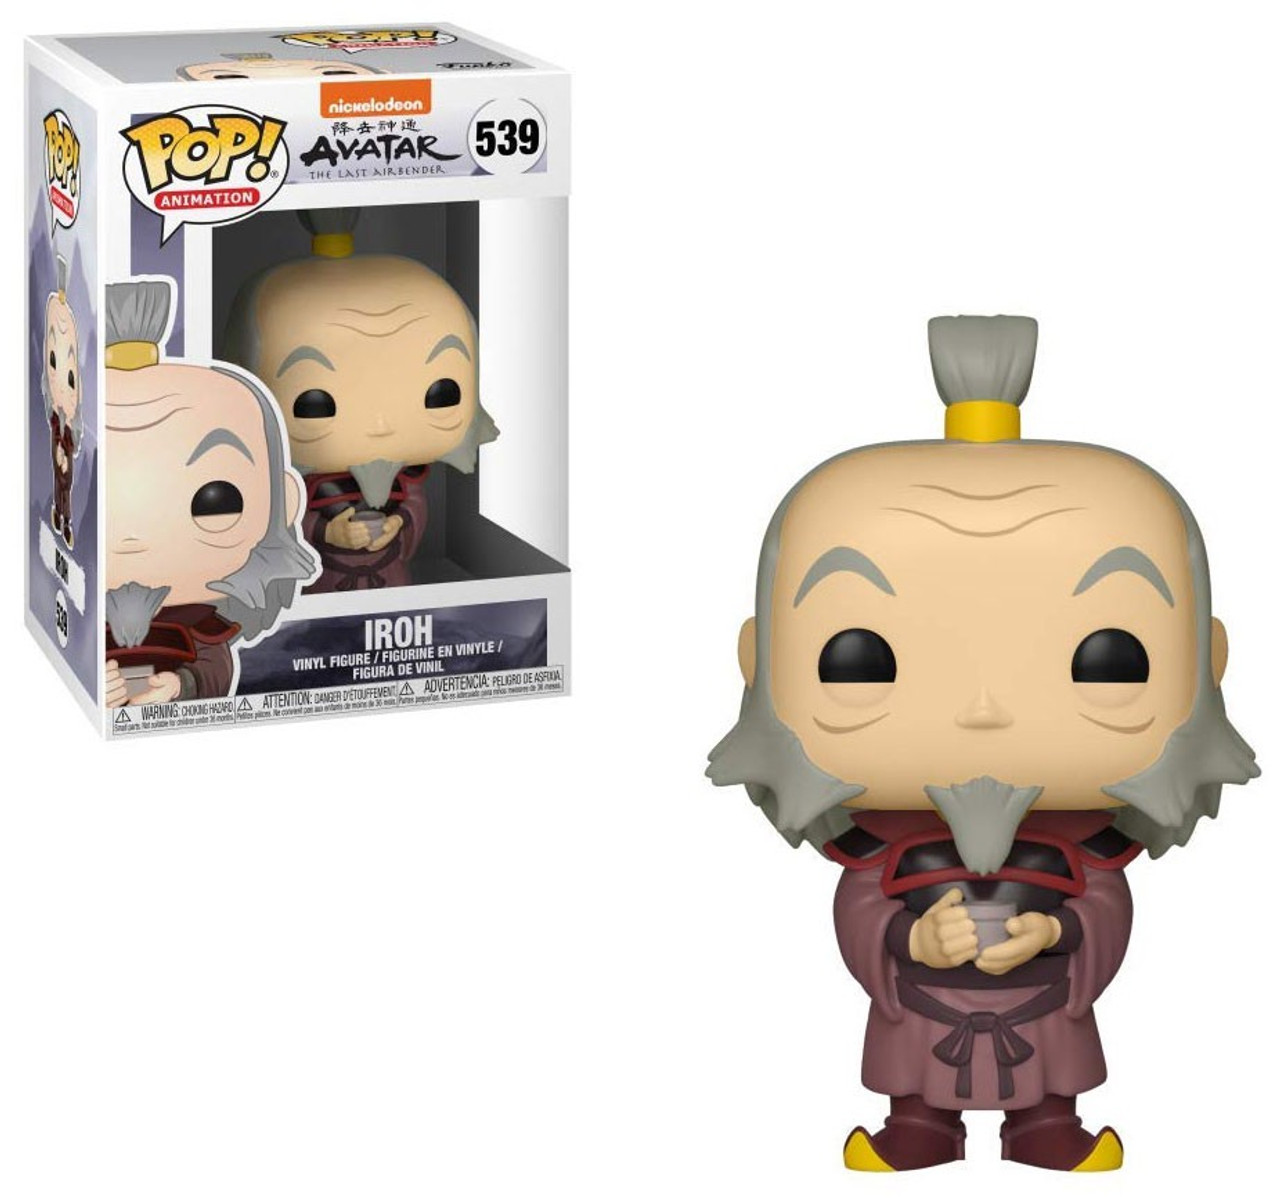 FUNKO POP ANIMATION APPA #540 AVATAR THE LAST AIRBENDER